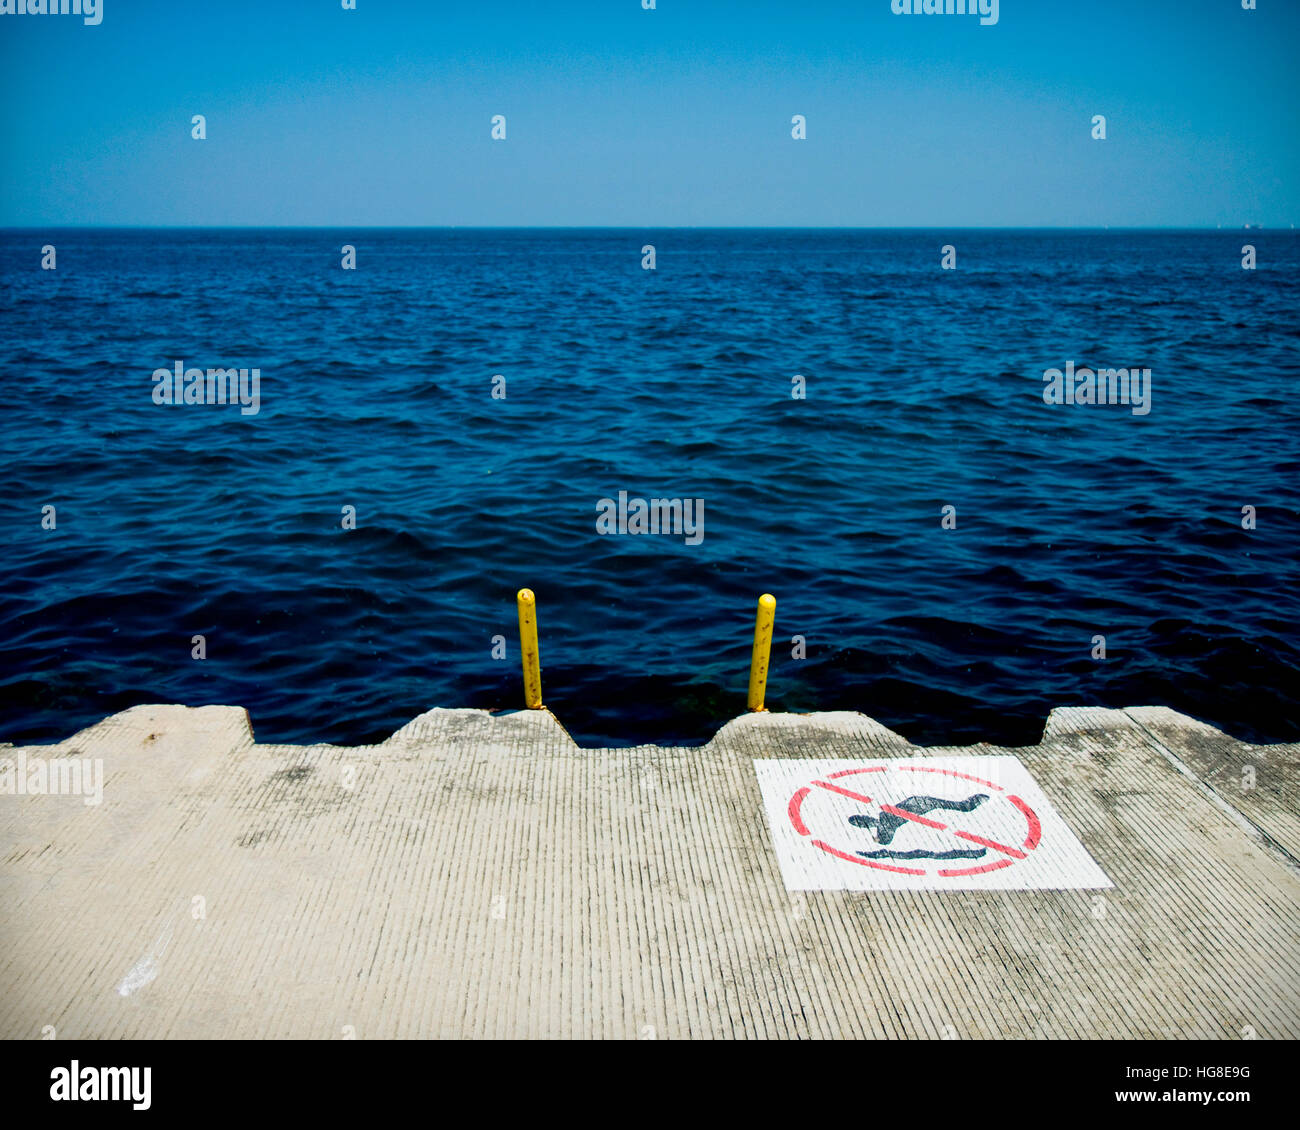 No swimming sign on pier over sea against clear blue sky Stock Photo